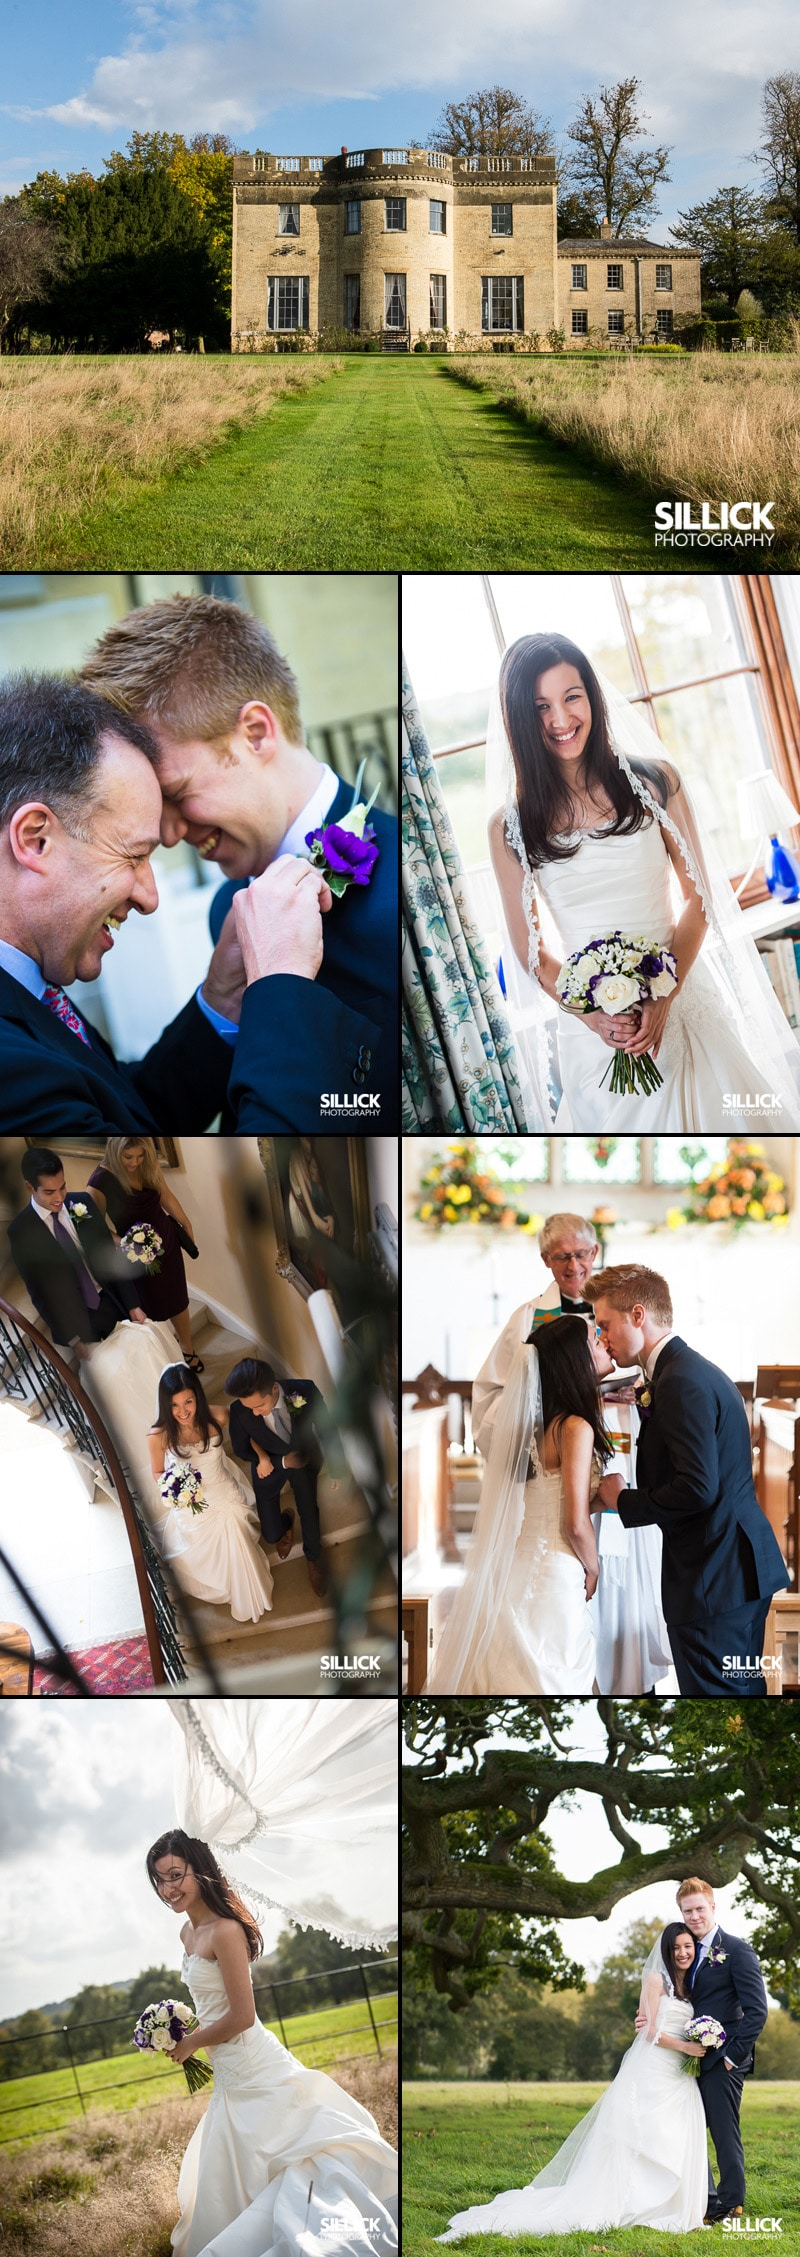 CJ & Dan - Hill Place - Sillick Photography. Hampshire wedding photographer